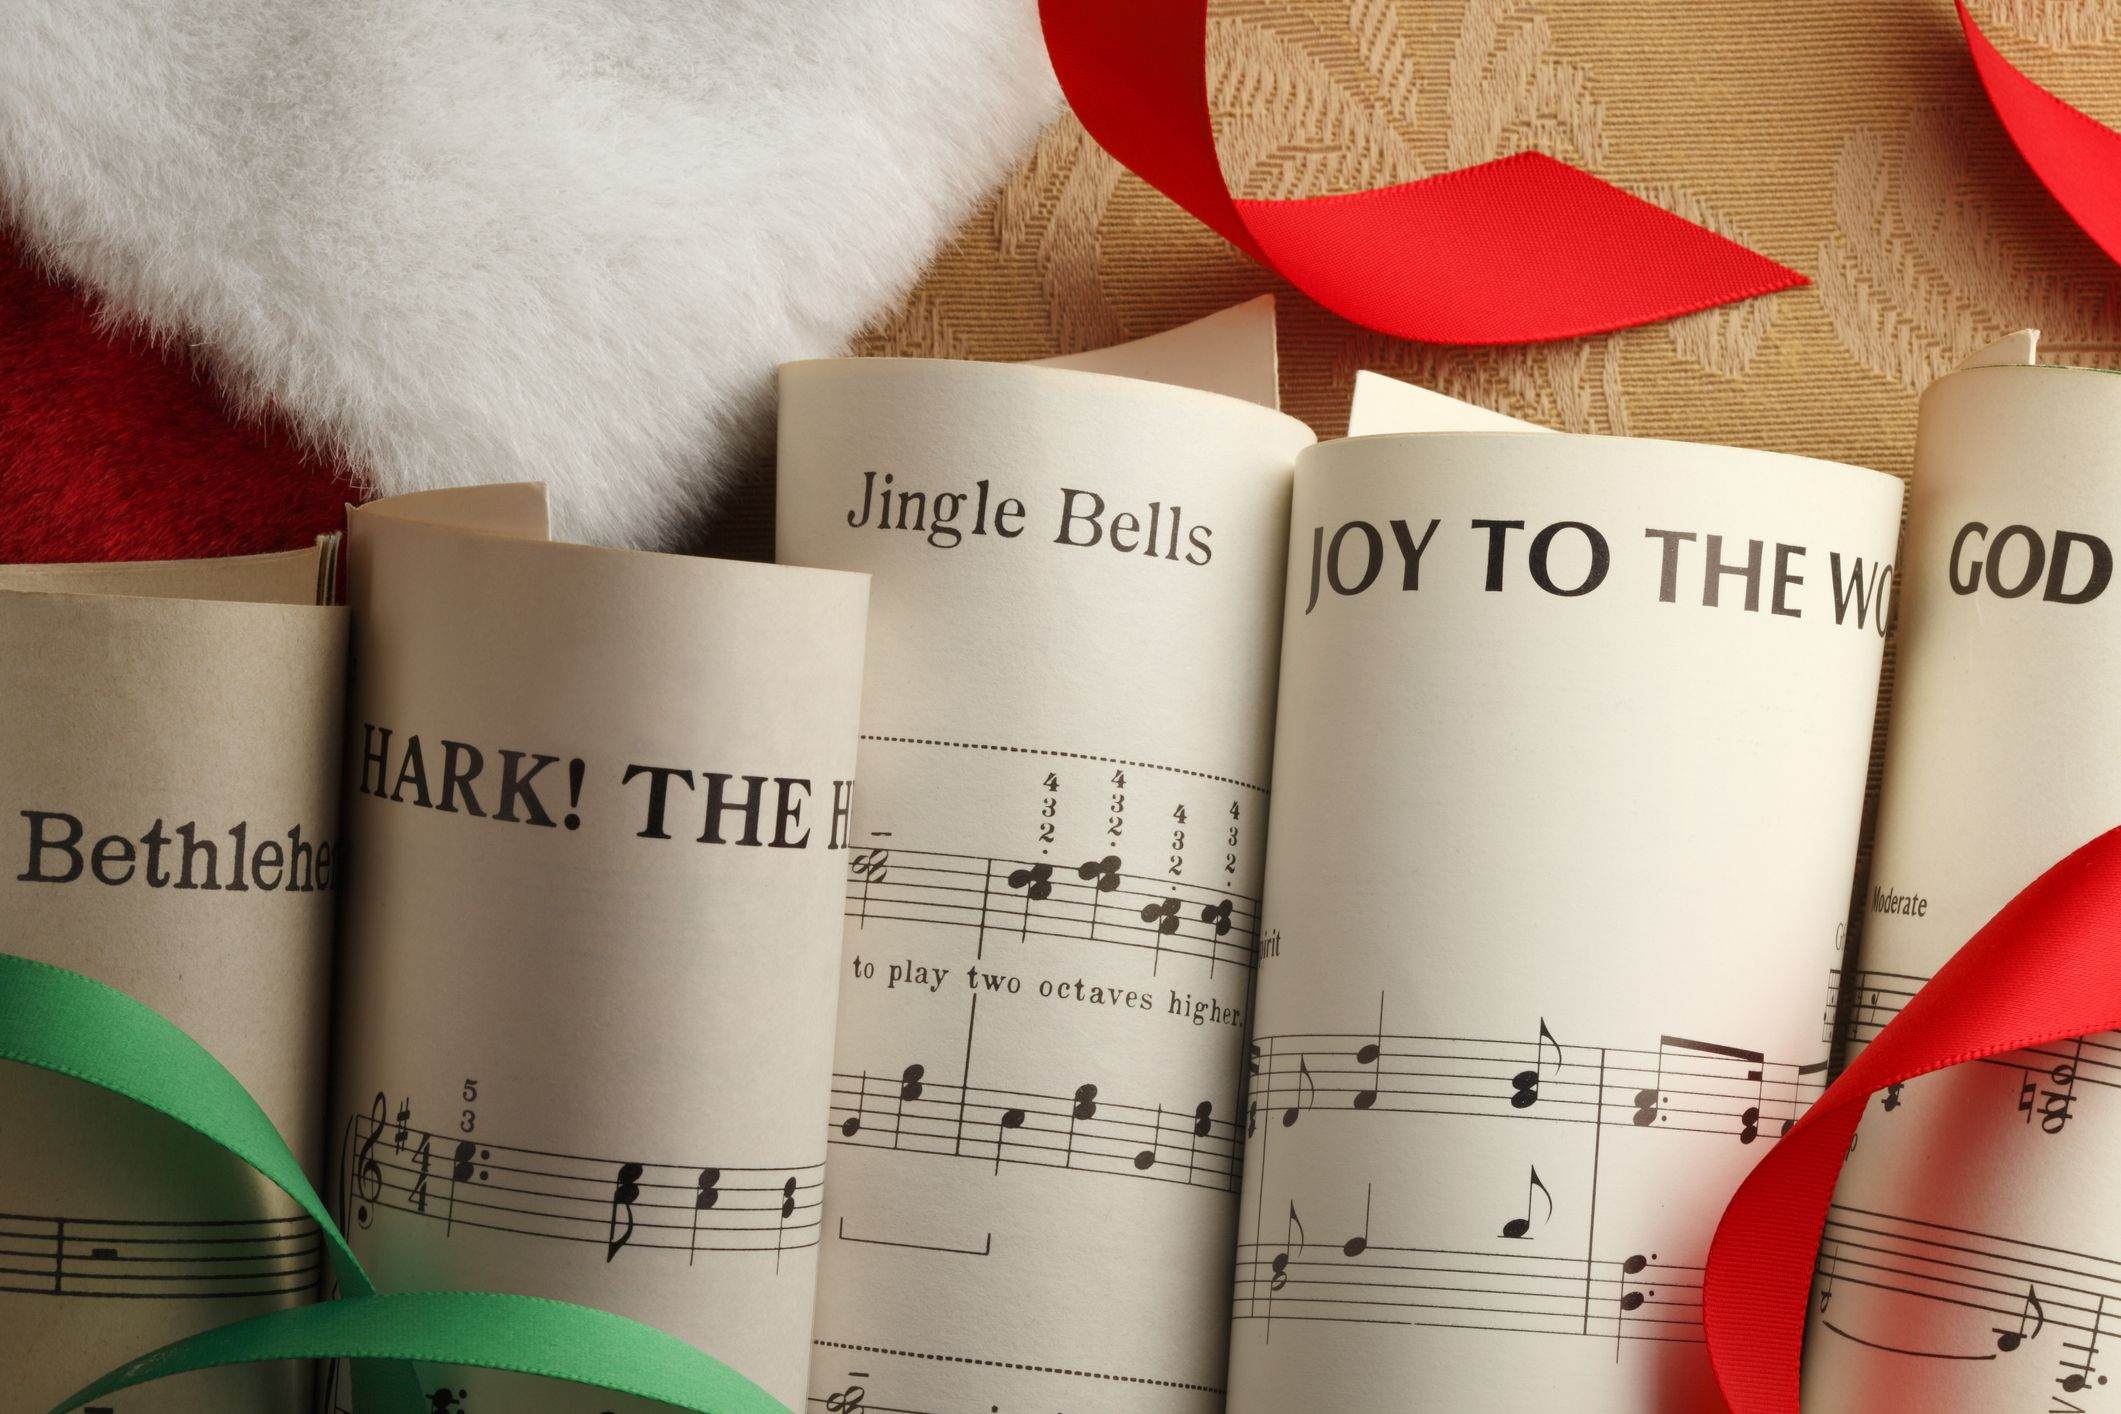 15 Best Religious Christmas Songs for the Most Heavenly Holiday Playlist